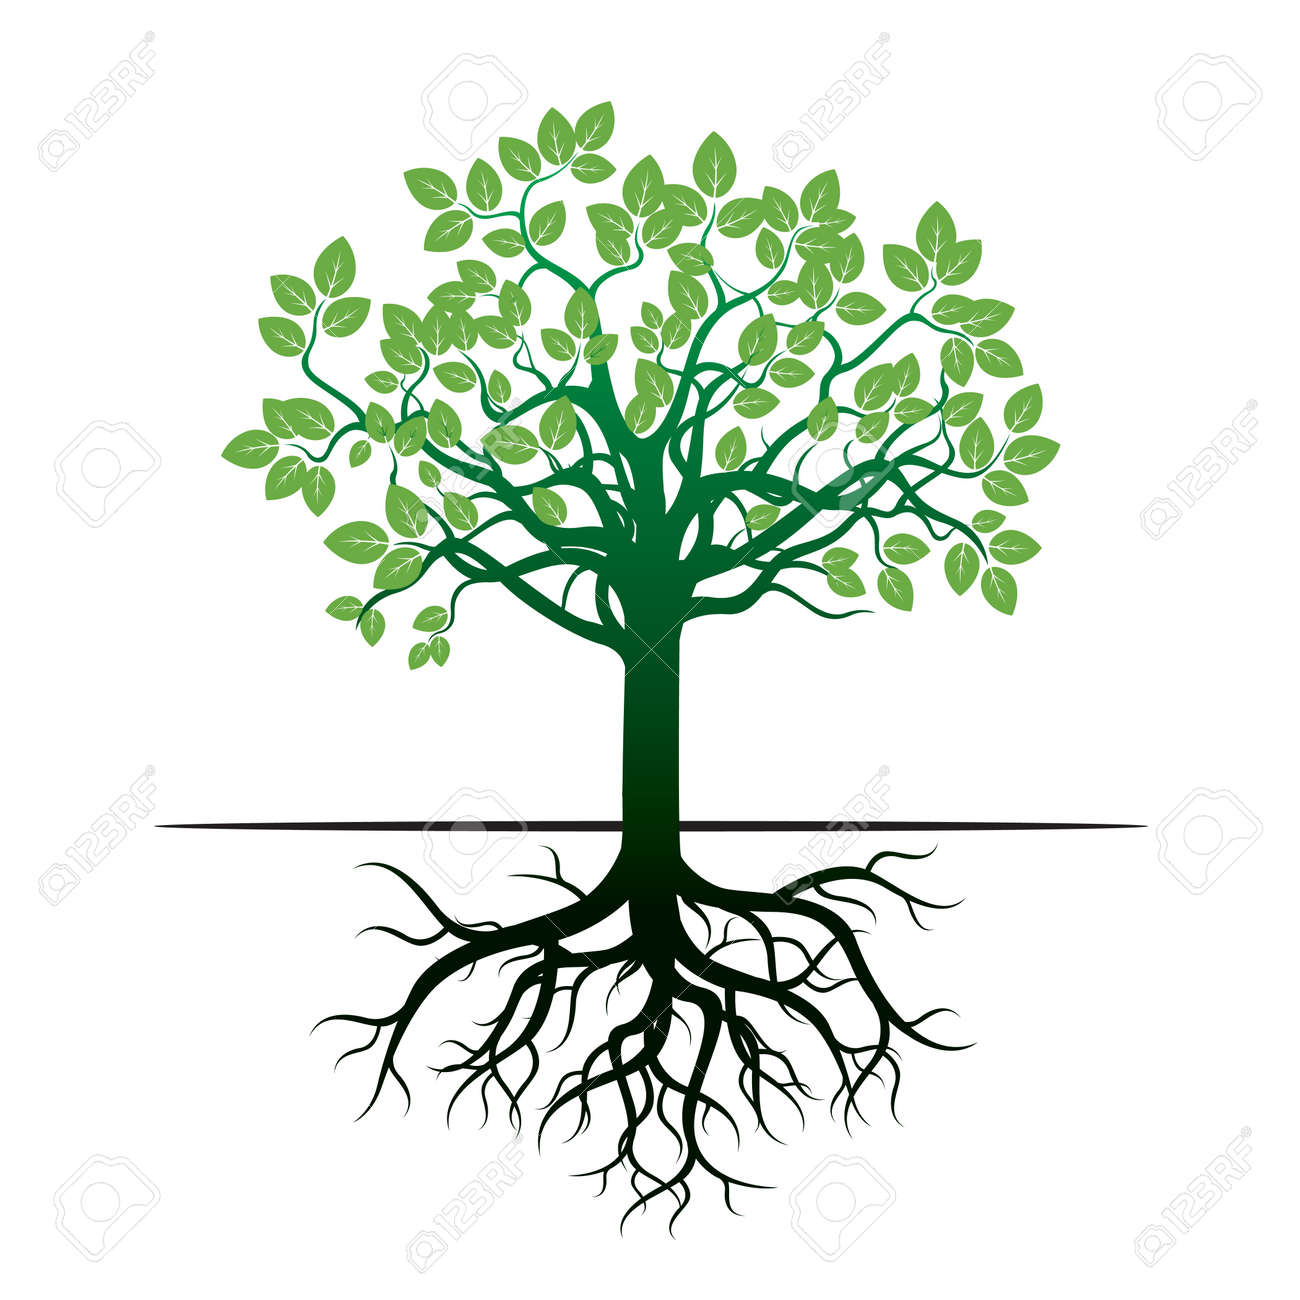 green tree and roots vector icon royalty free cliparts vectors rh 123rf com tree with roots vector free transparent tree with roots vector